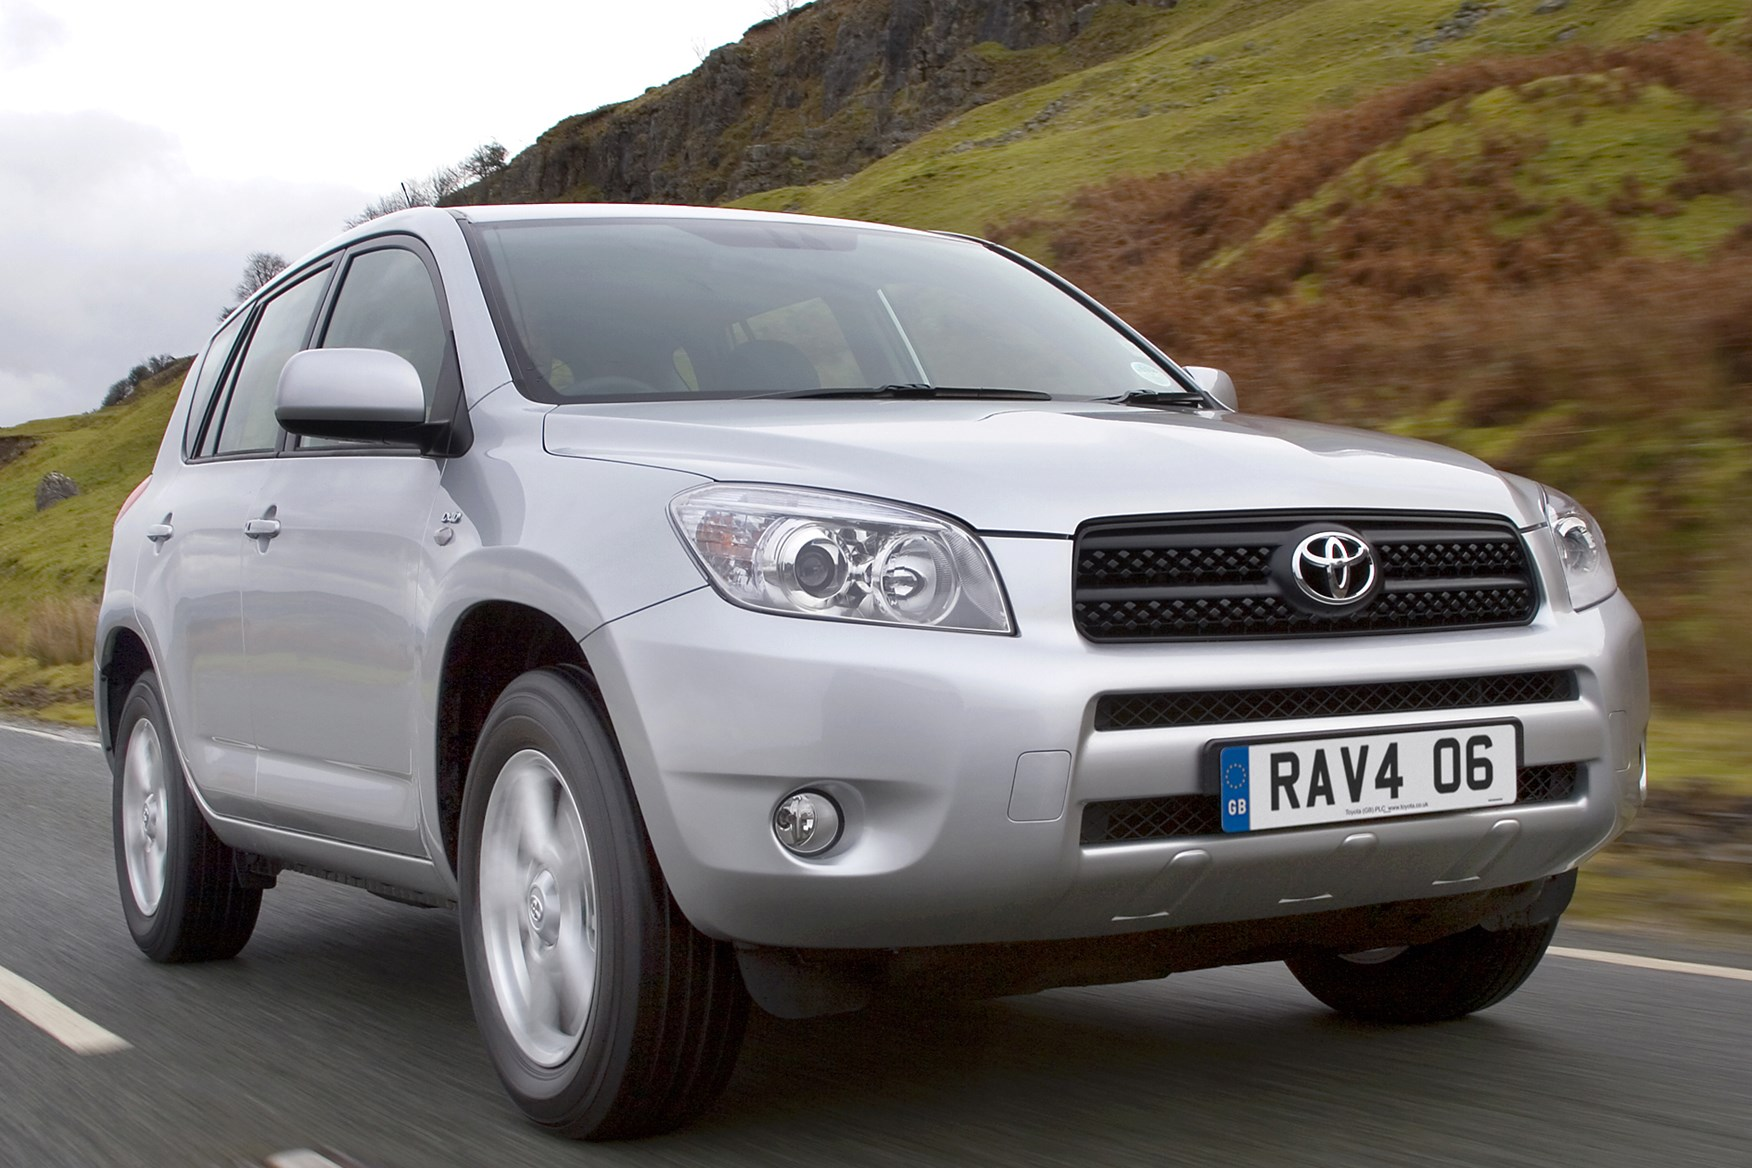 toyota rav4 estate 2006 2012 photos parkers. Black Bedroom Furniture Sets. Home Design Ideas